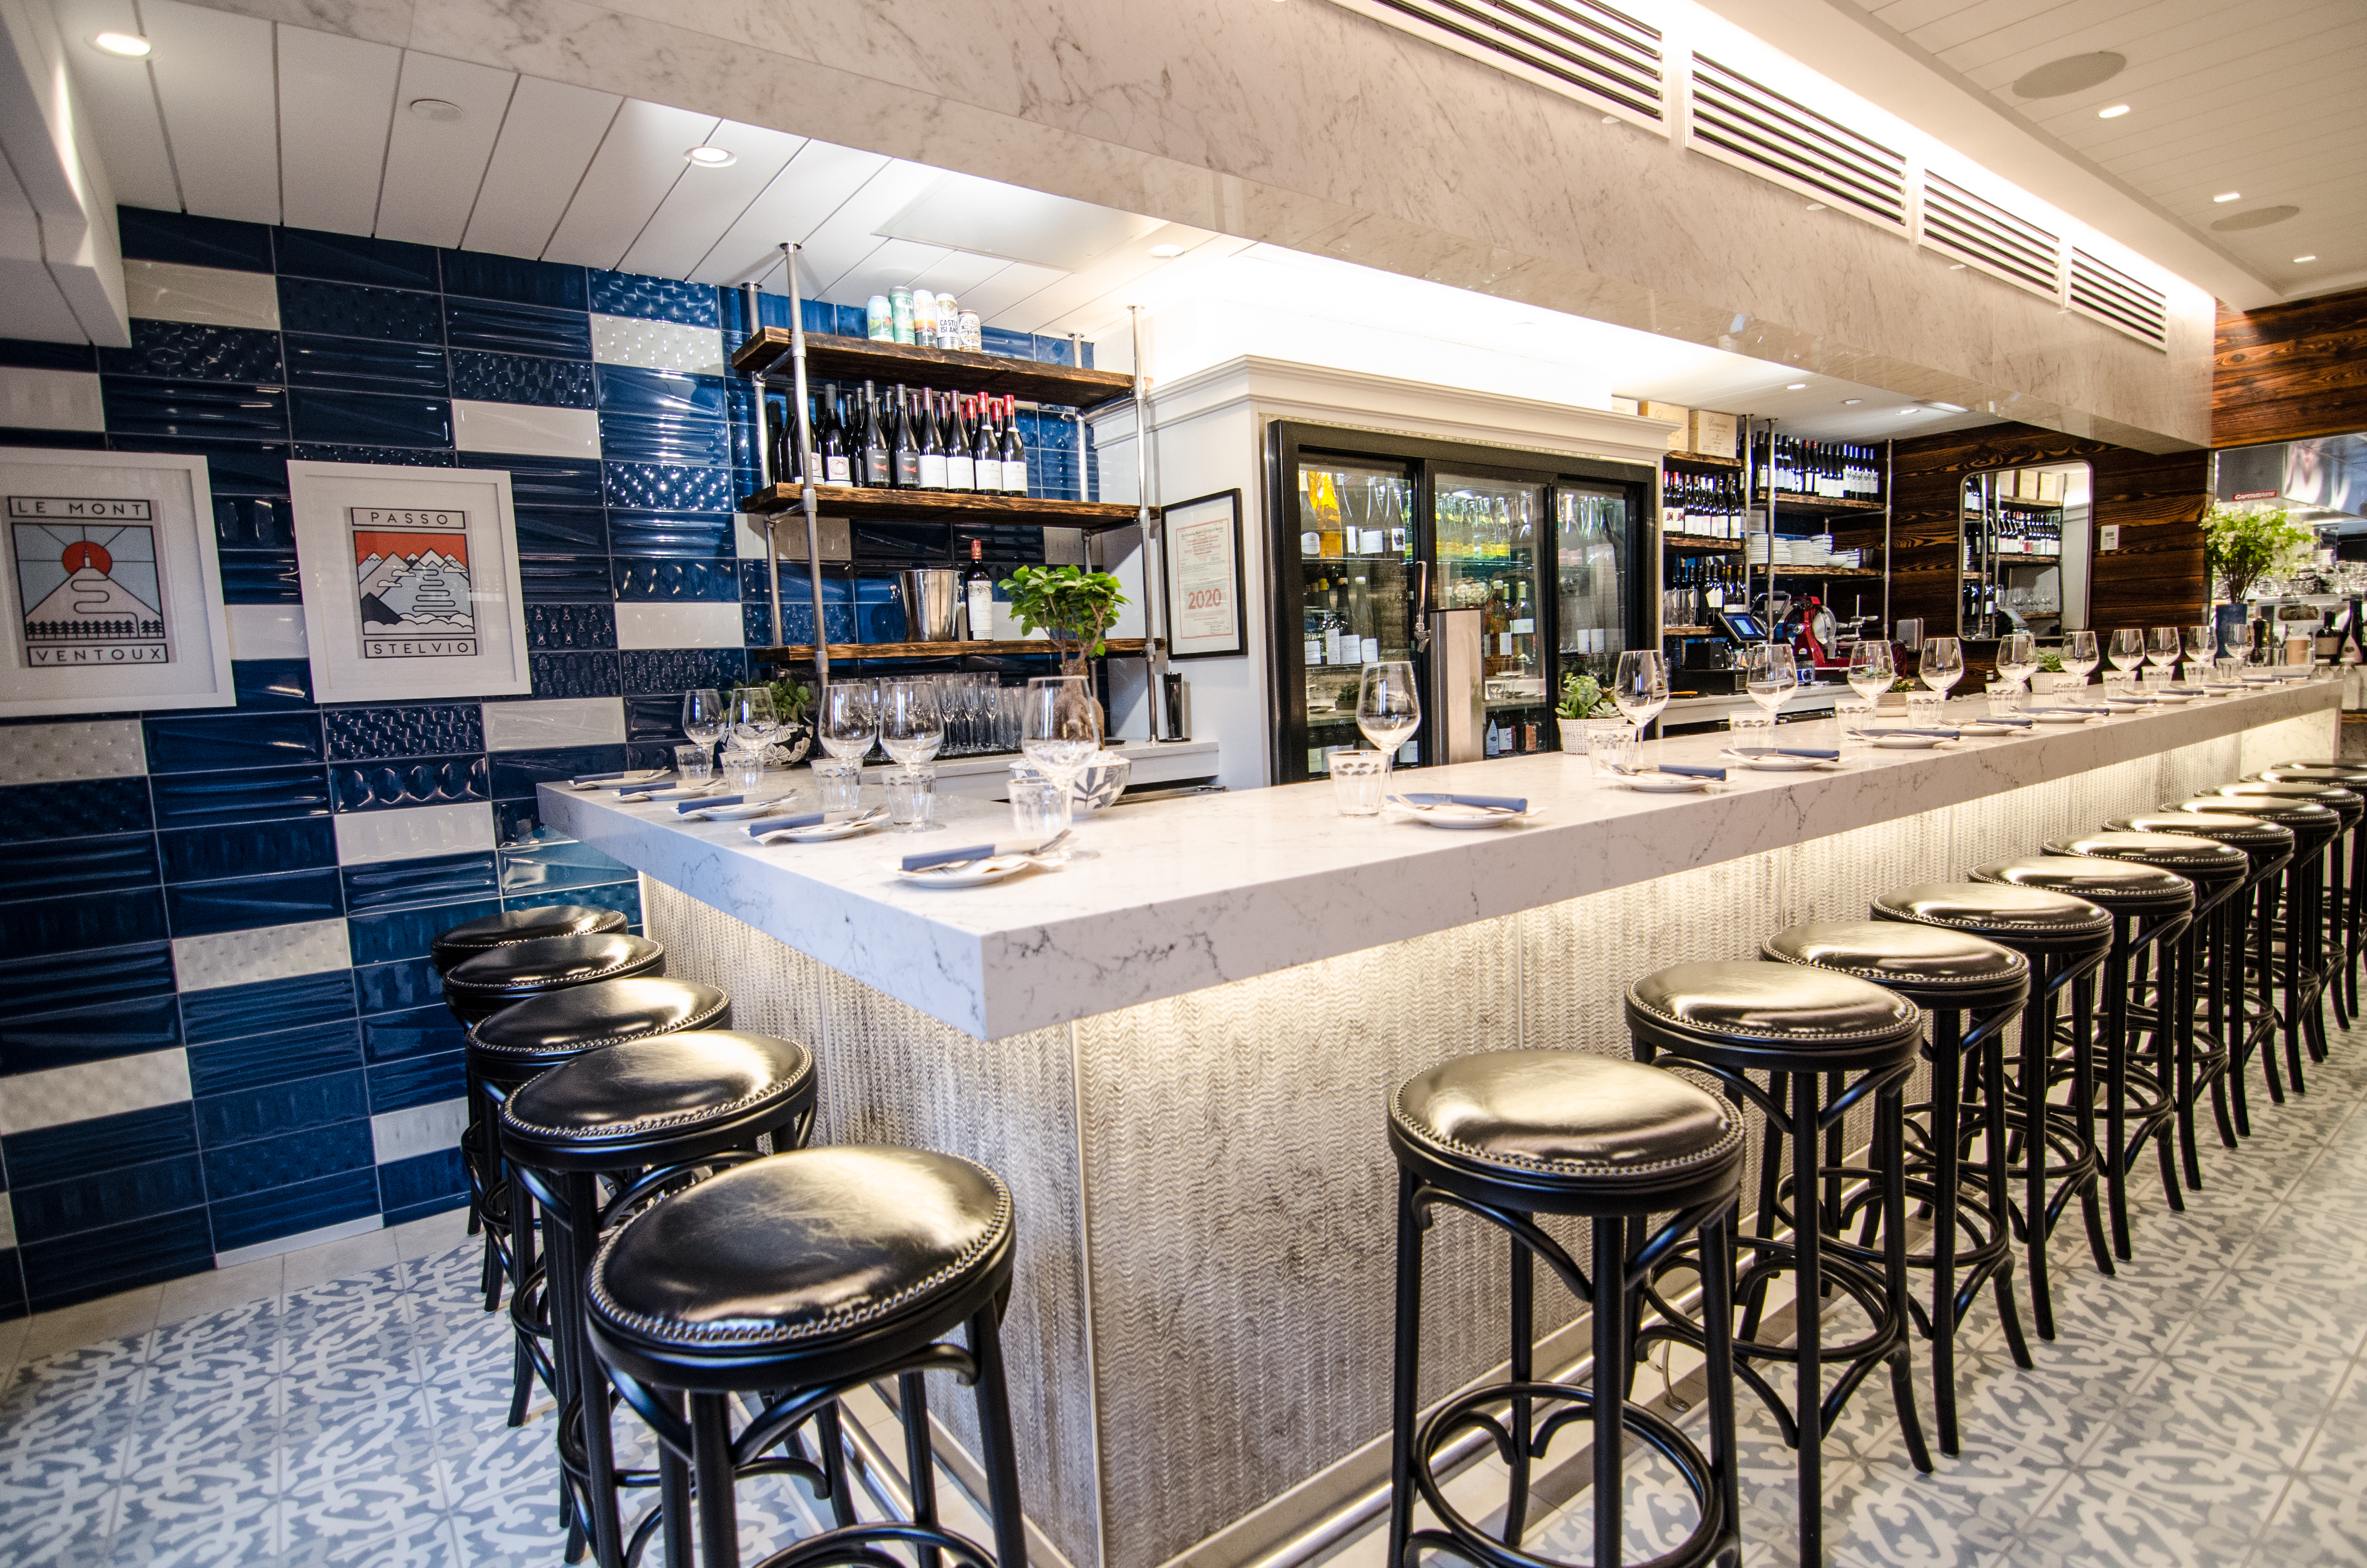 Shiny black stools line a white marble bar. The floor has Spanish-style tiles, and there are dark blue, glossy tiles on the wall.